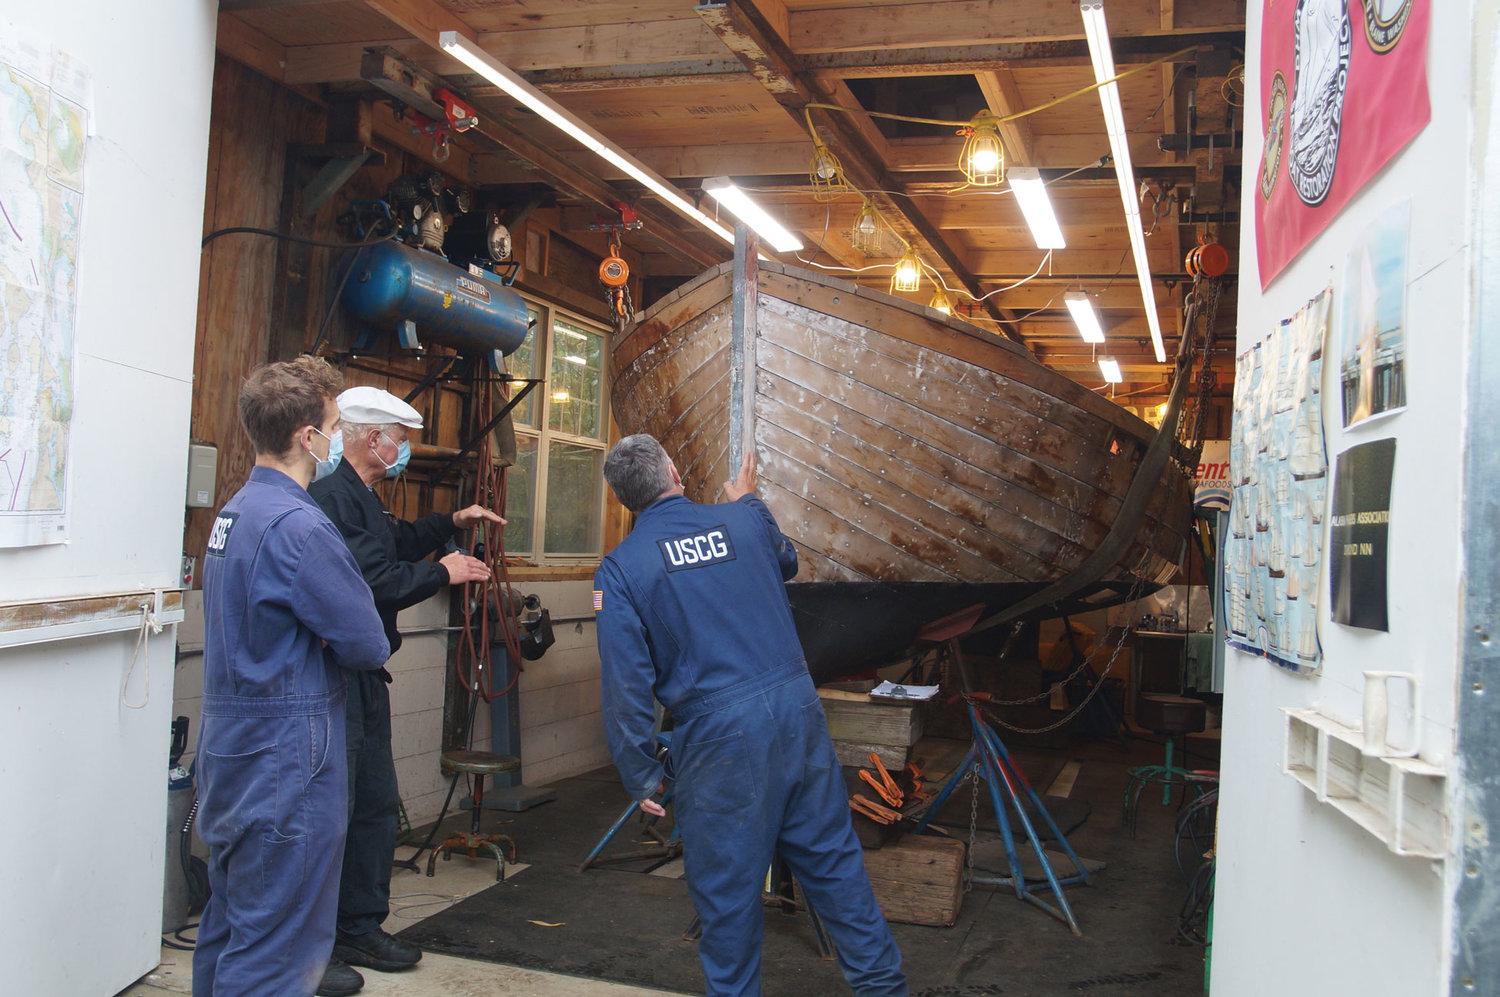 On September 23, the U.S. Coast Guard inspected Drayton Harbor Maritime's 114-year-old Bristol Bay sailboat that the nonprofit is working to rebuild.